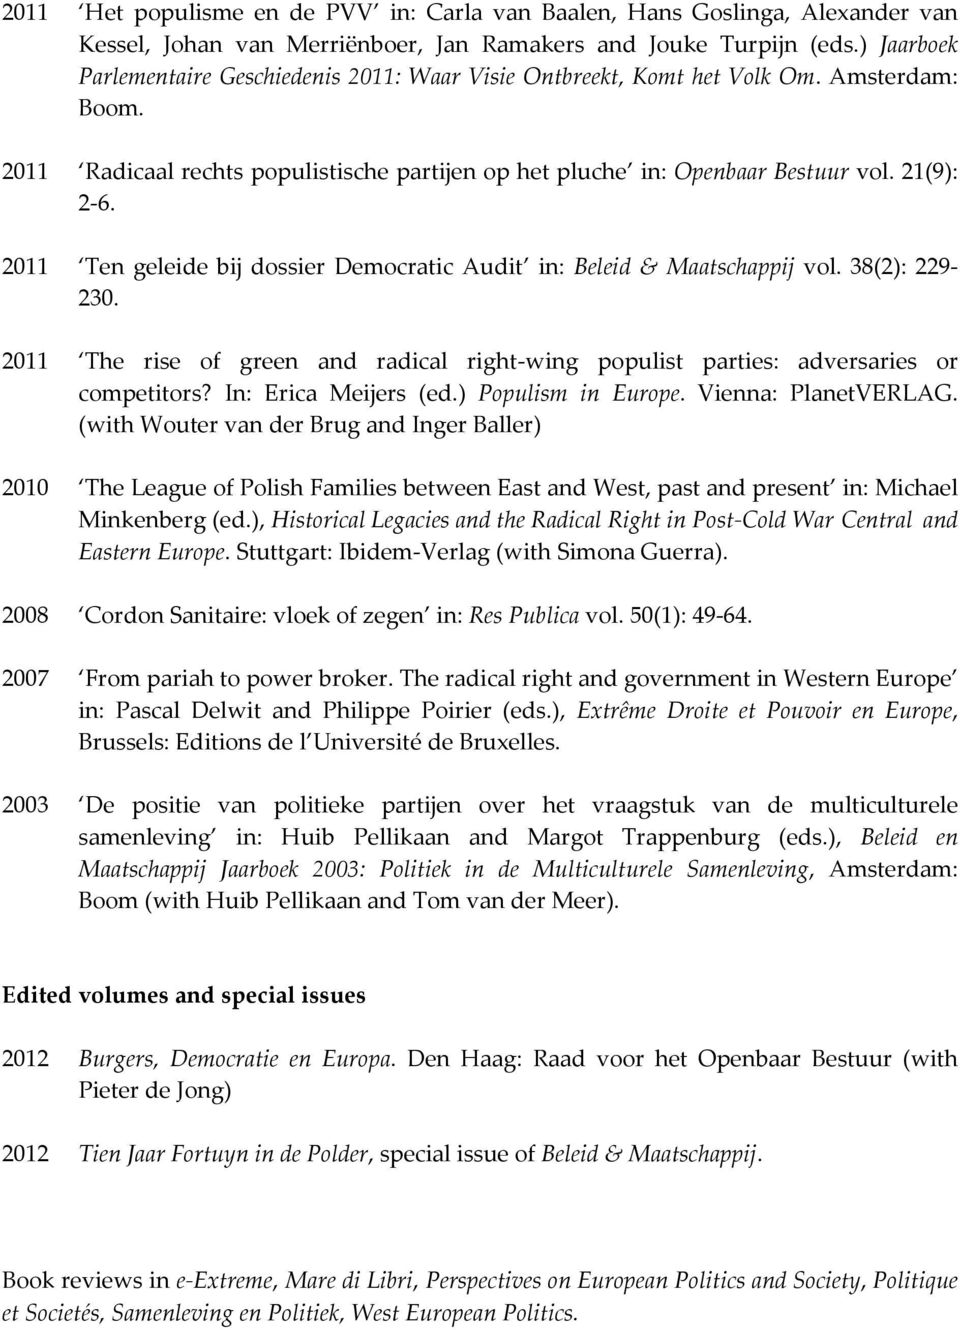 2011 Ten geleide bij dossier Democratic Audit in: Beleid & Maatschappij vol. 38(2): 229-230. 2011 The rise of green and radical right-wing populist parties: adversaries or competitors?